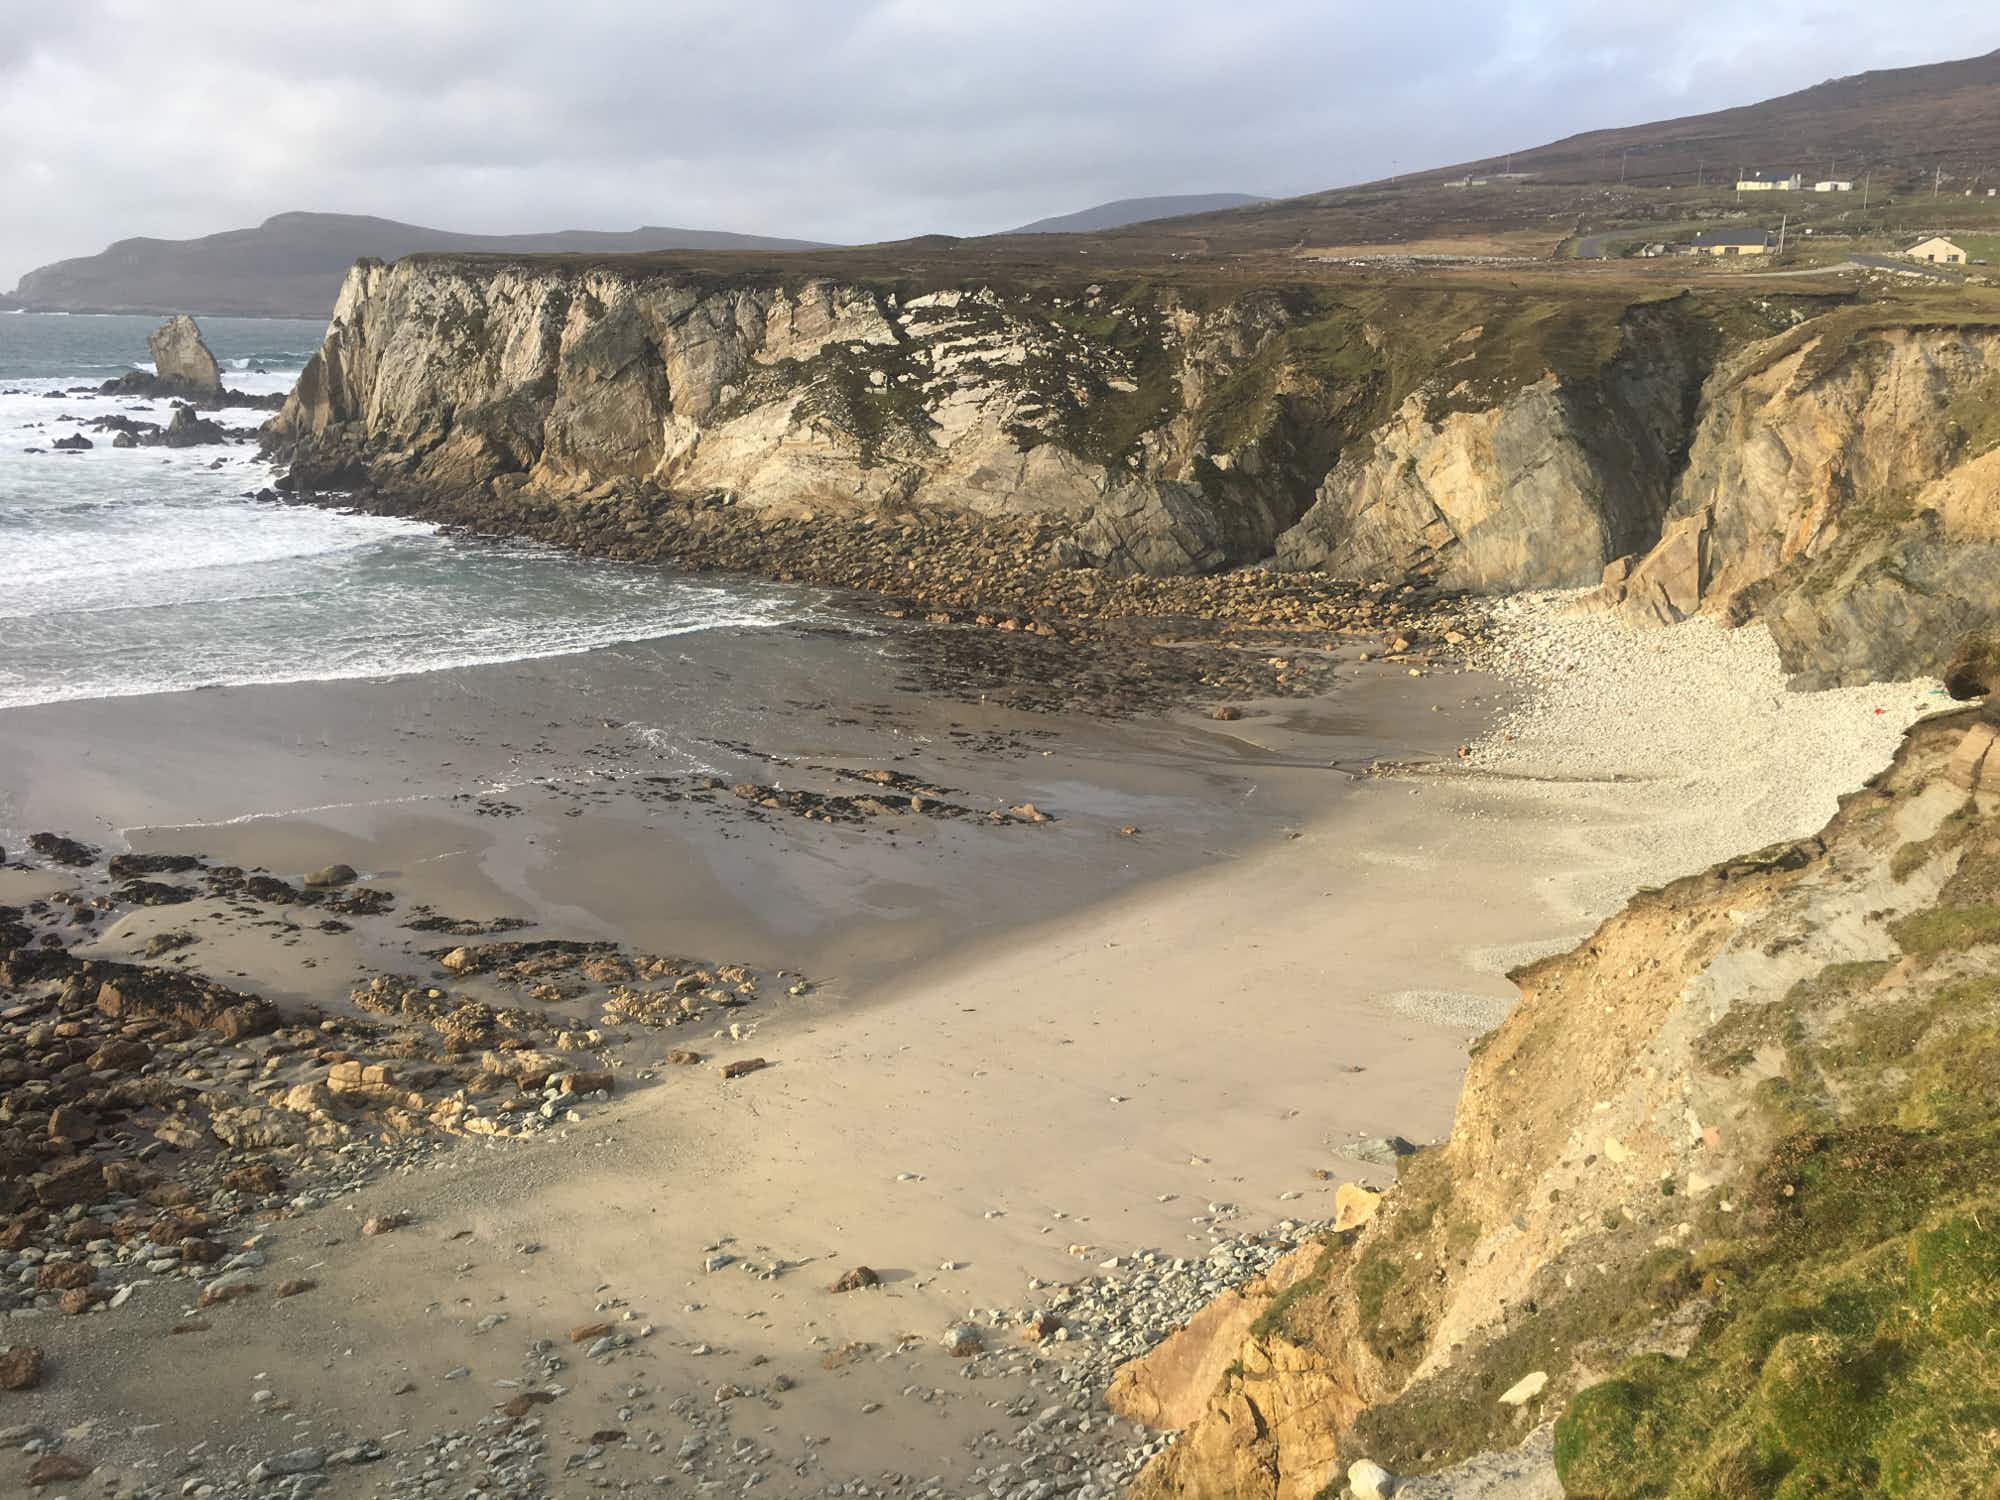 Ireland's Achill Island reclaims second lost beach after many years